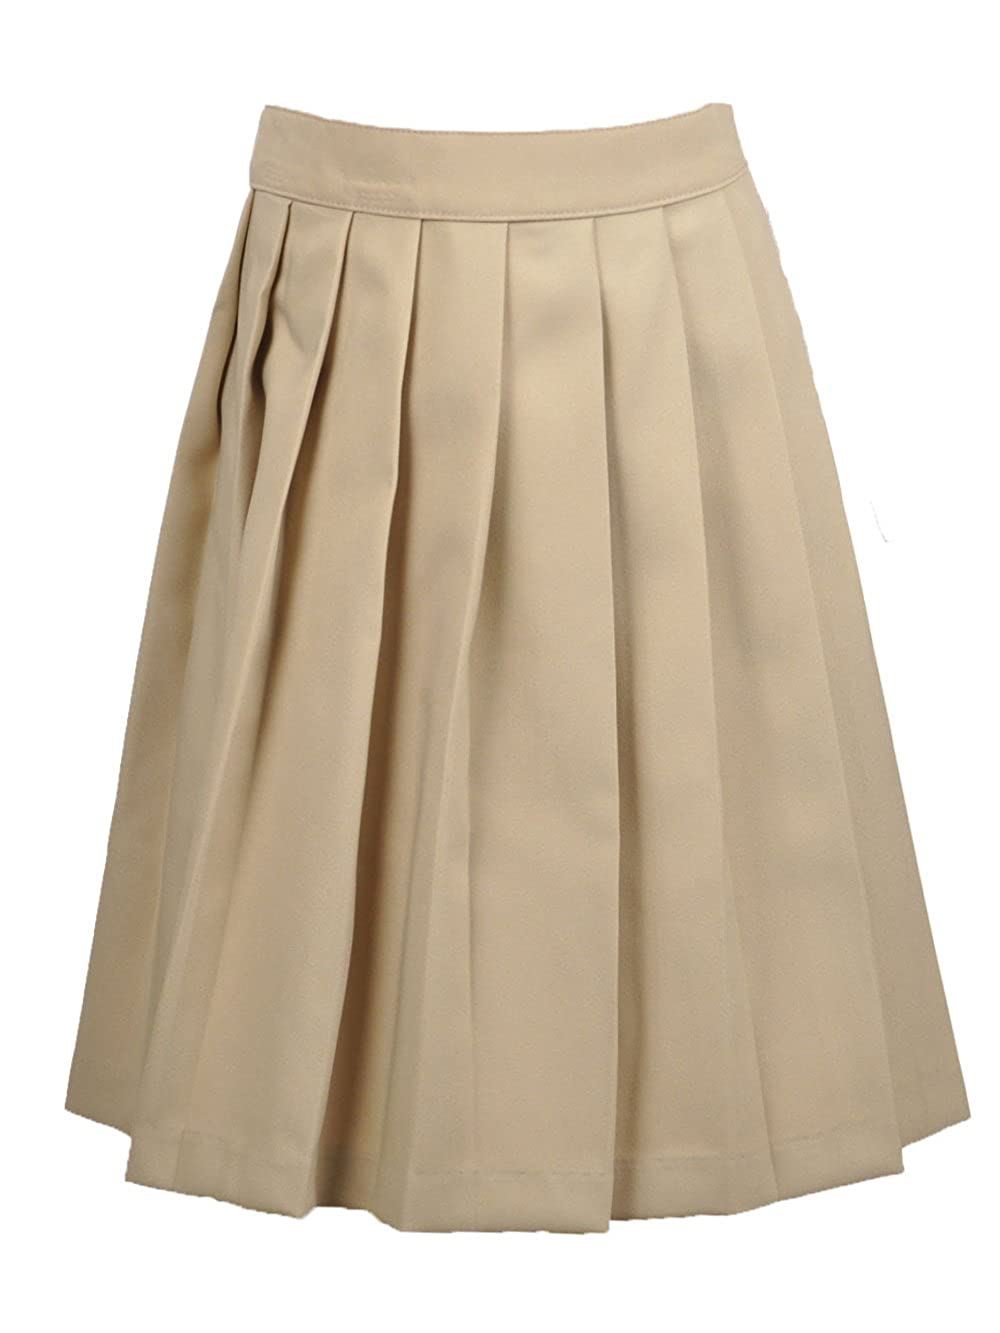 French Toast Big Girls' Pleated Skirt